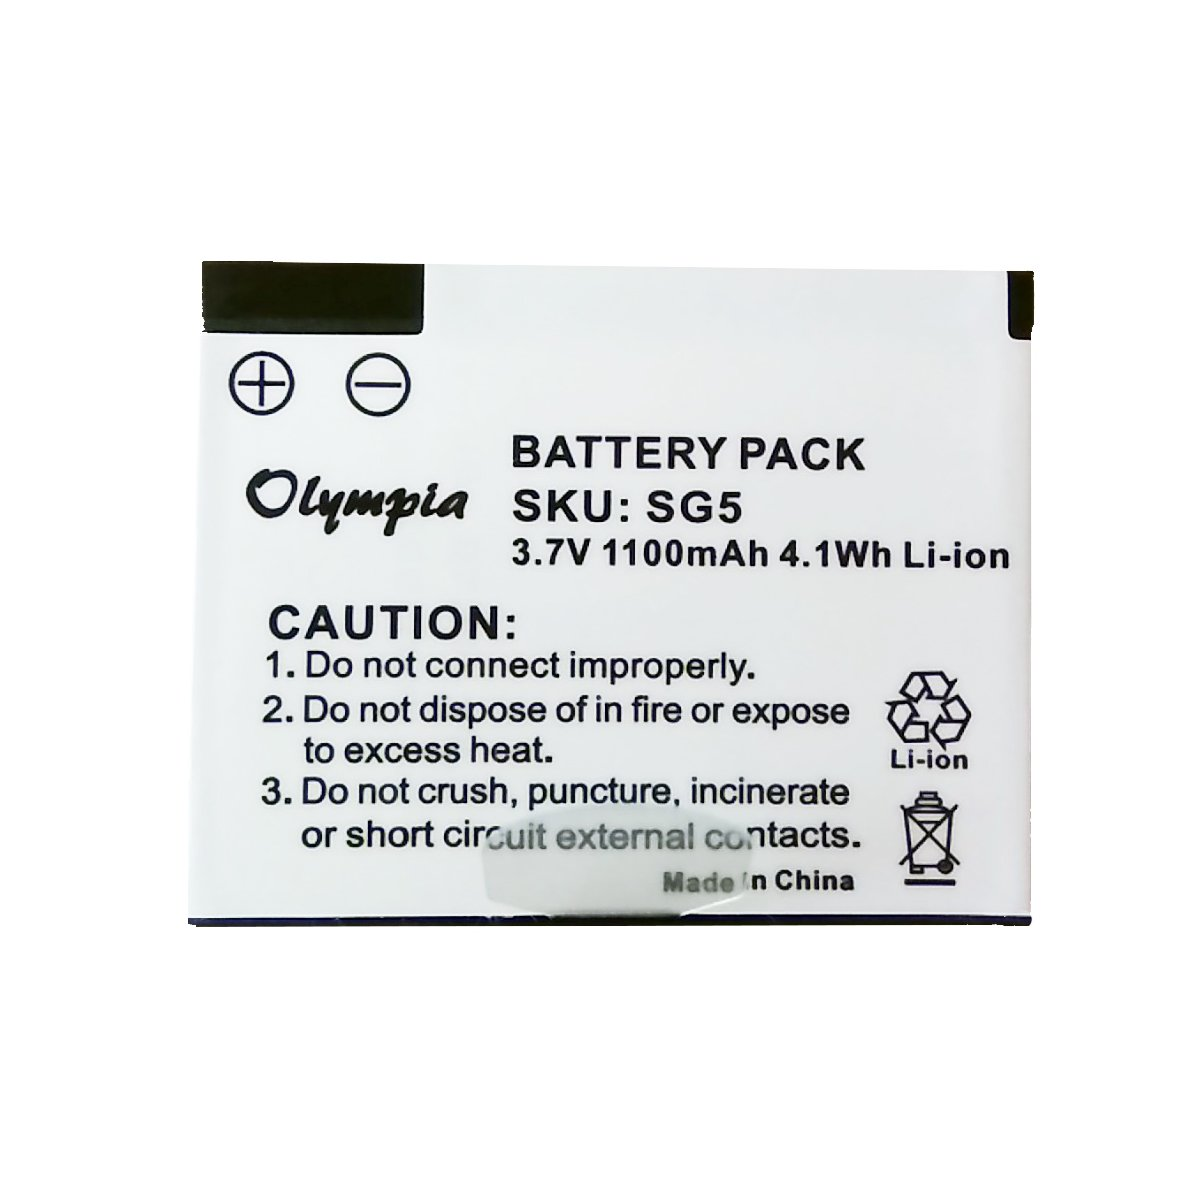 Skygolf SG5 Battery - Replacement Battery for Skygolf SG5 Rangefinder (1100mAh, 3.7V, Li-Ion)